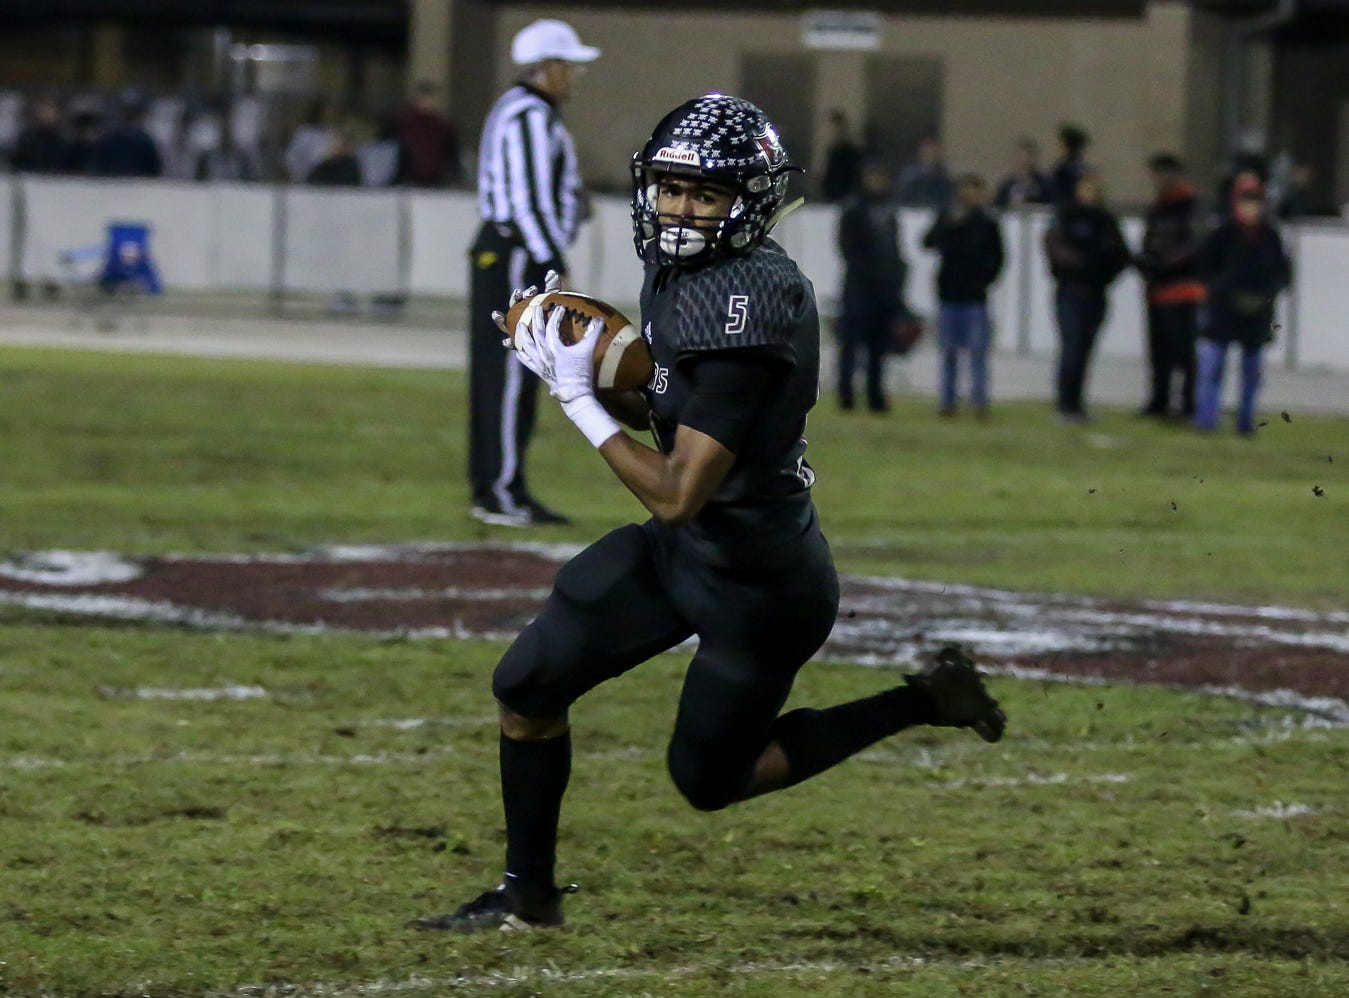 Navarre's Dante Wright (5) runs up the field against Escambia in the Region 1-6A Semifinal game at Navarre High School on Friday, November 16, 2018.